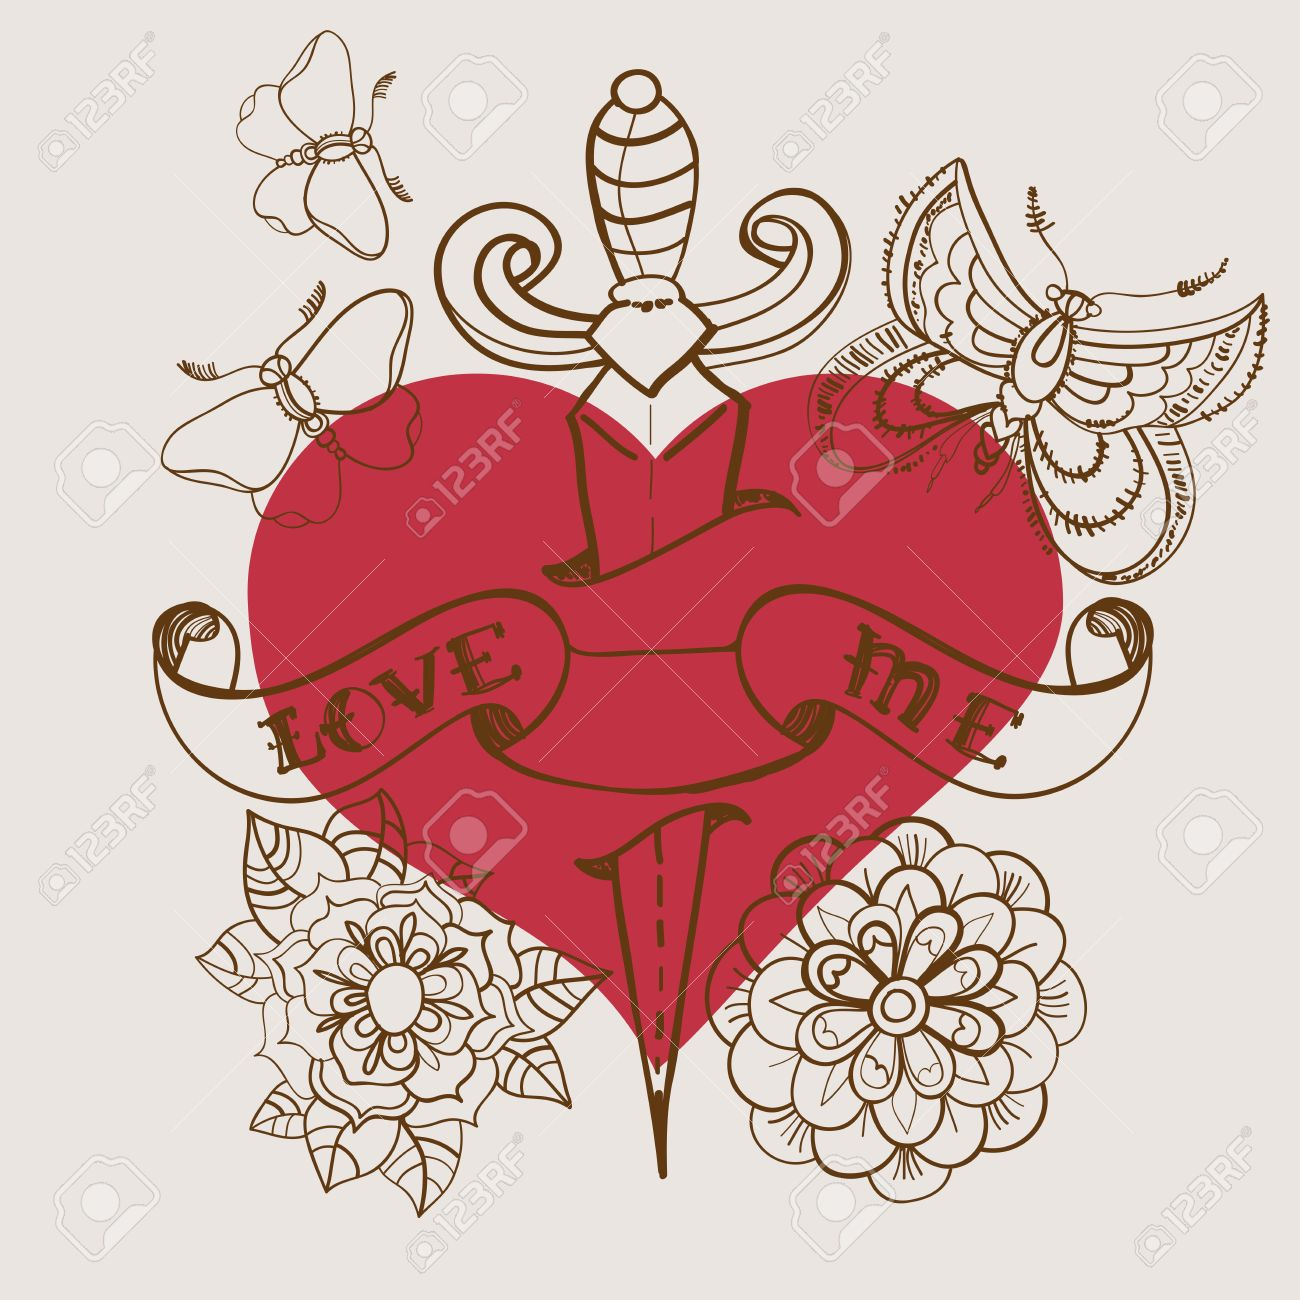 Old School Style Tattoo Heart With Flowers And Dagger, Valentine  Illustration For Holiday Design